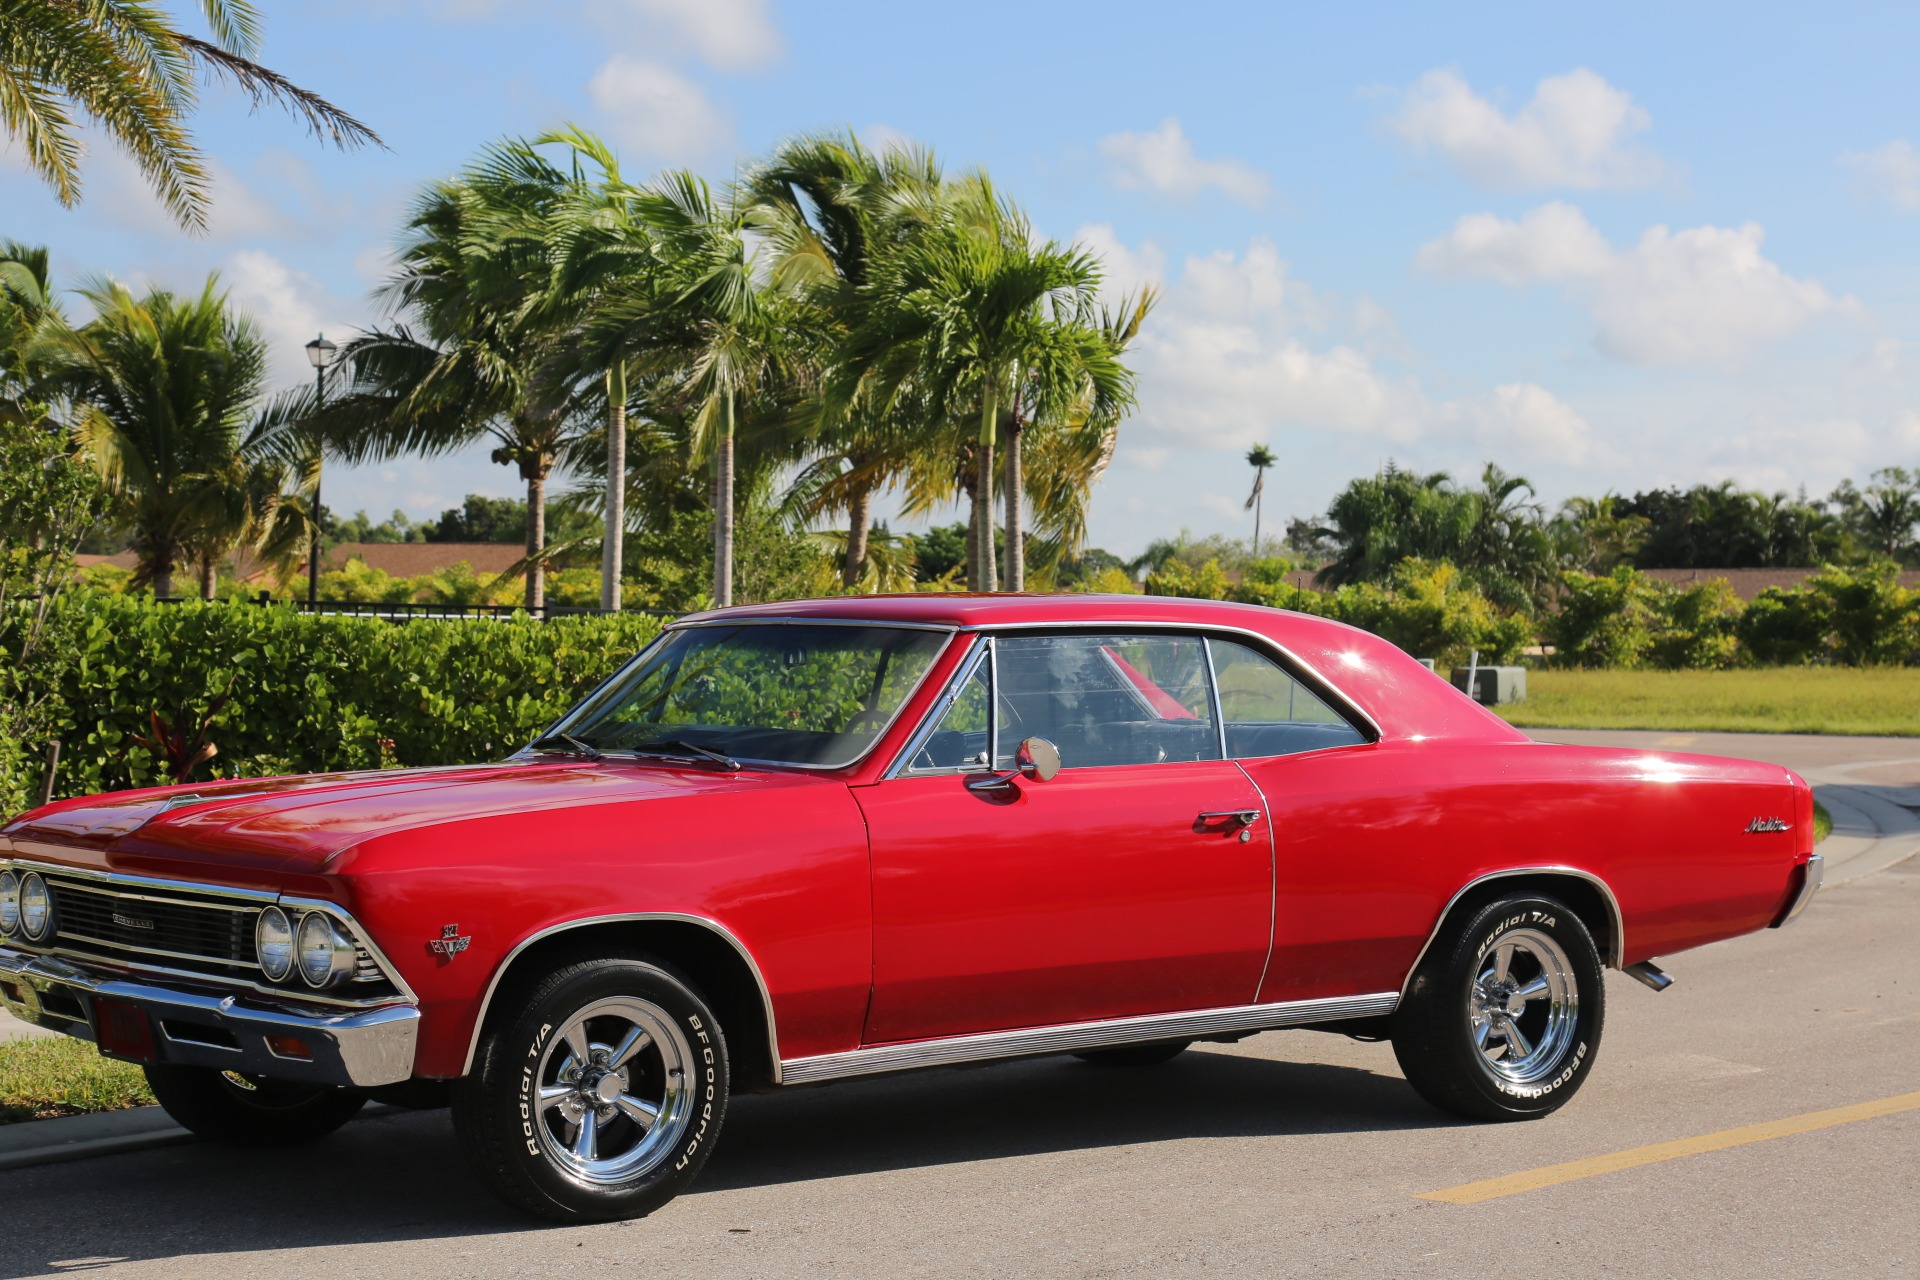 Used 1966 Chevrolet Chevelle Malibu 327 for sale Sold at Muscle Cars for Sale Inc. in Fort Myers FL 33912 3